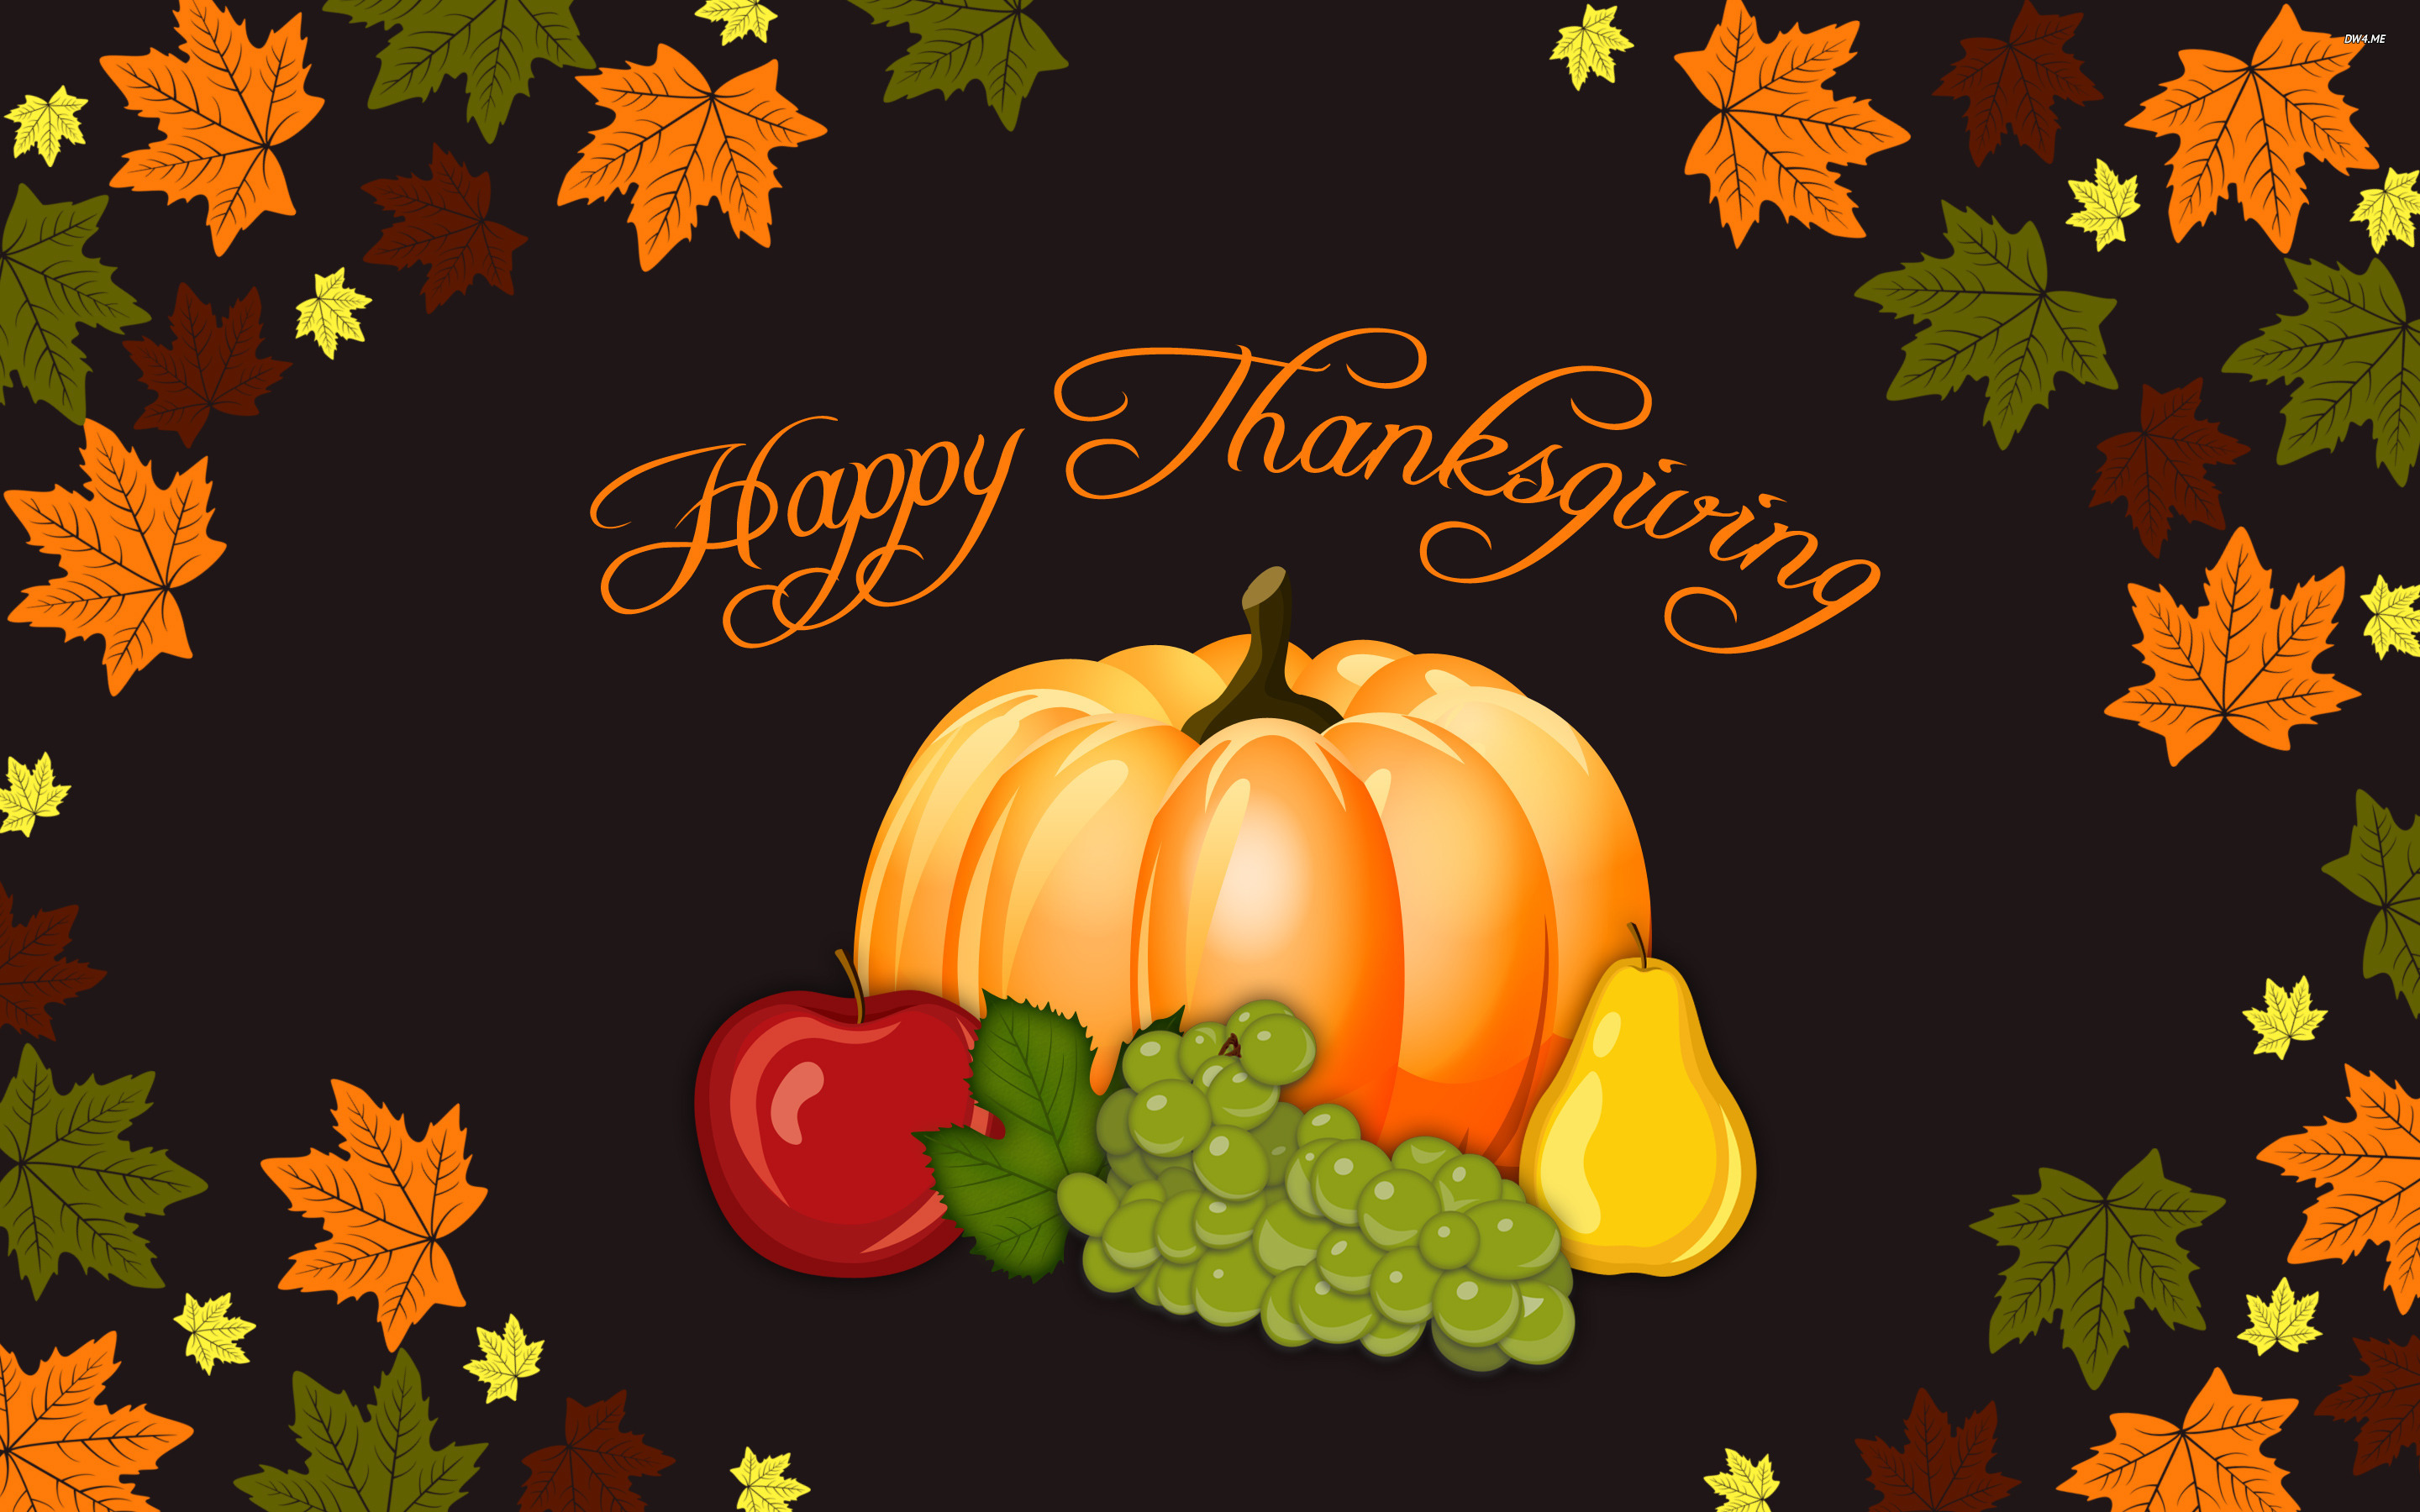 Free Download}* Happy Thanksgiving Images Wallpaper Pictures